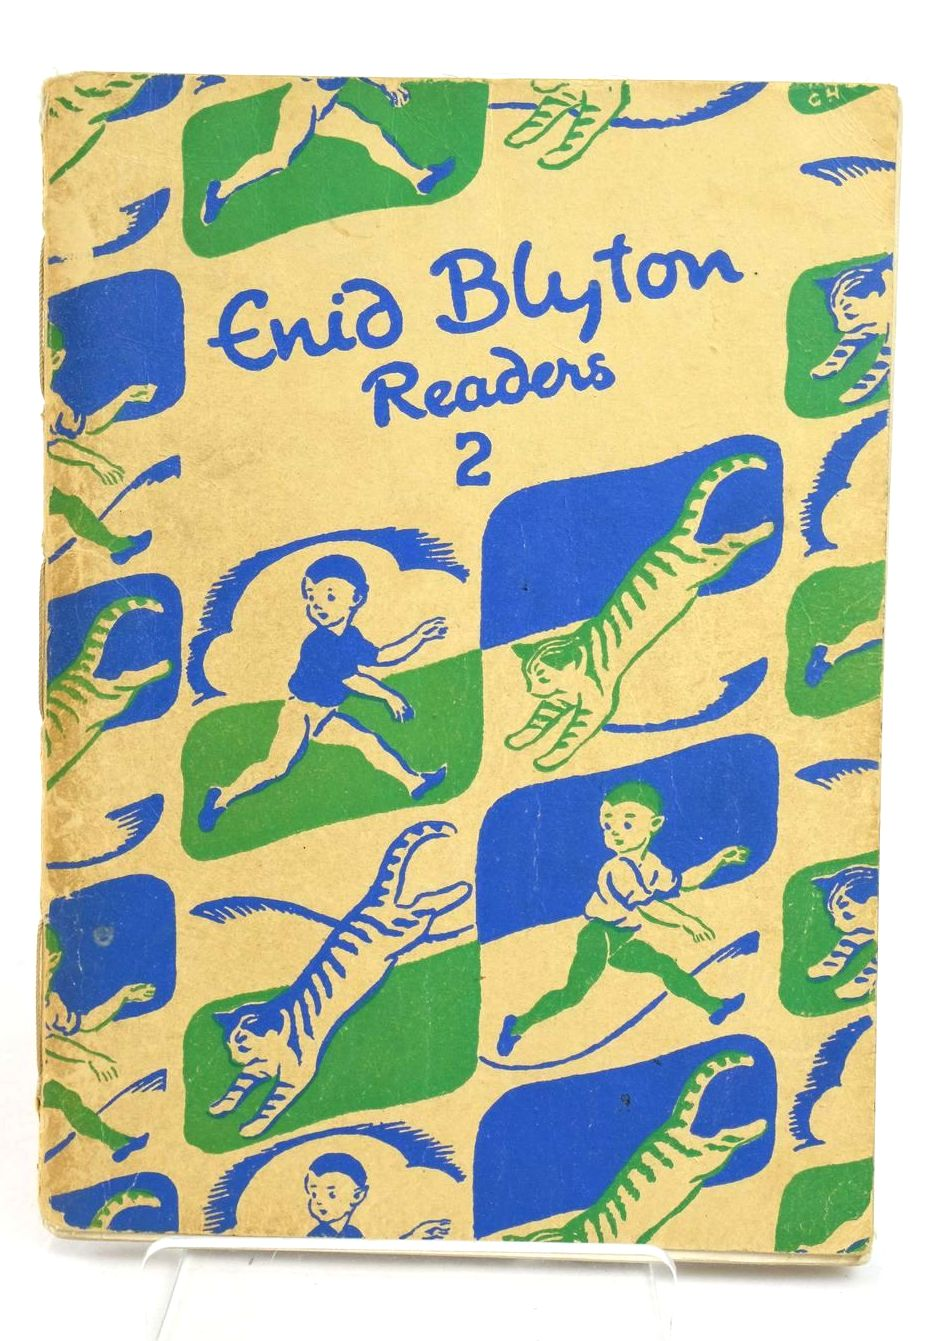 Photo of ENID BLYTON READERS 2 written by Blyton, Enid illustrated by Soper, Eileen published by Macmillan & Co. Ltd. (STOCK CODE: 1318986)  for sale by Stella & Rose's Books